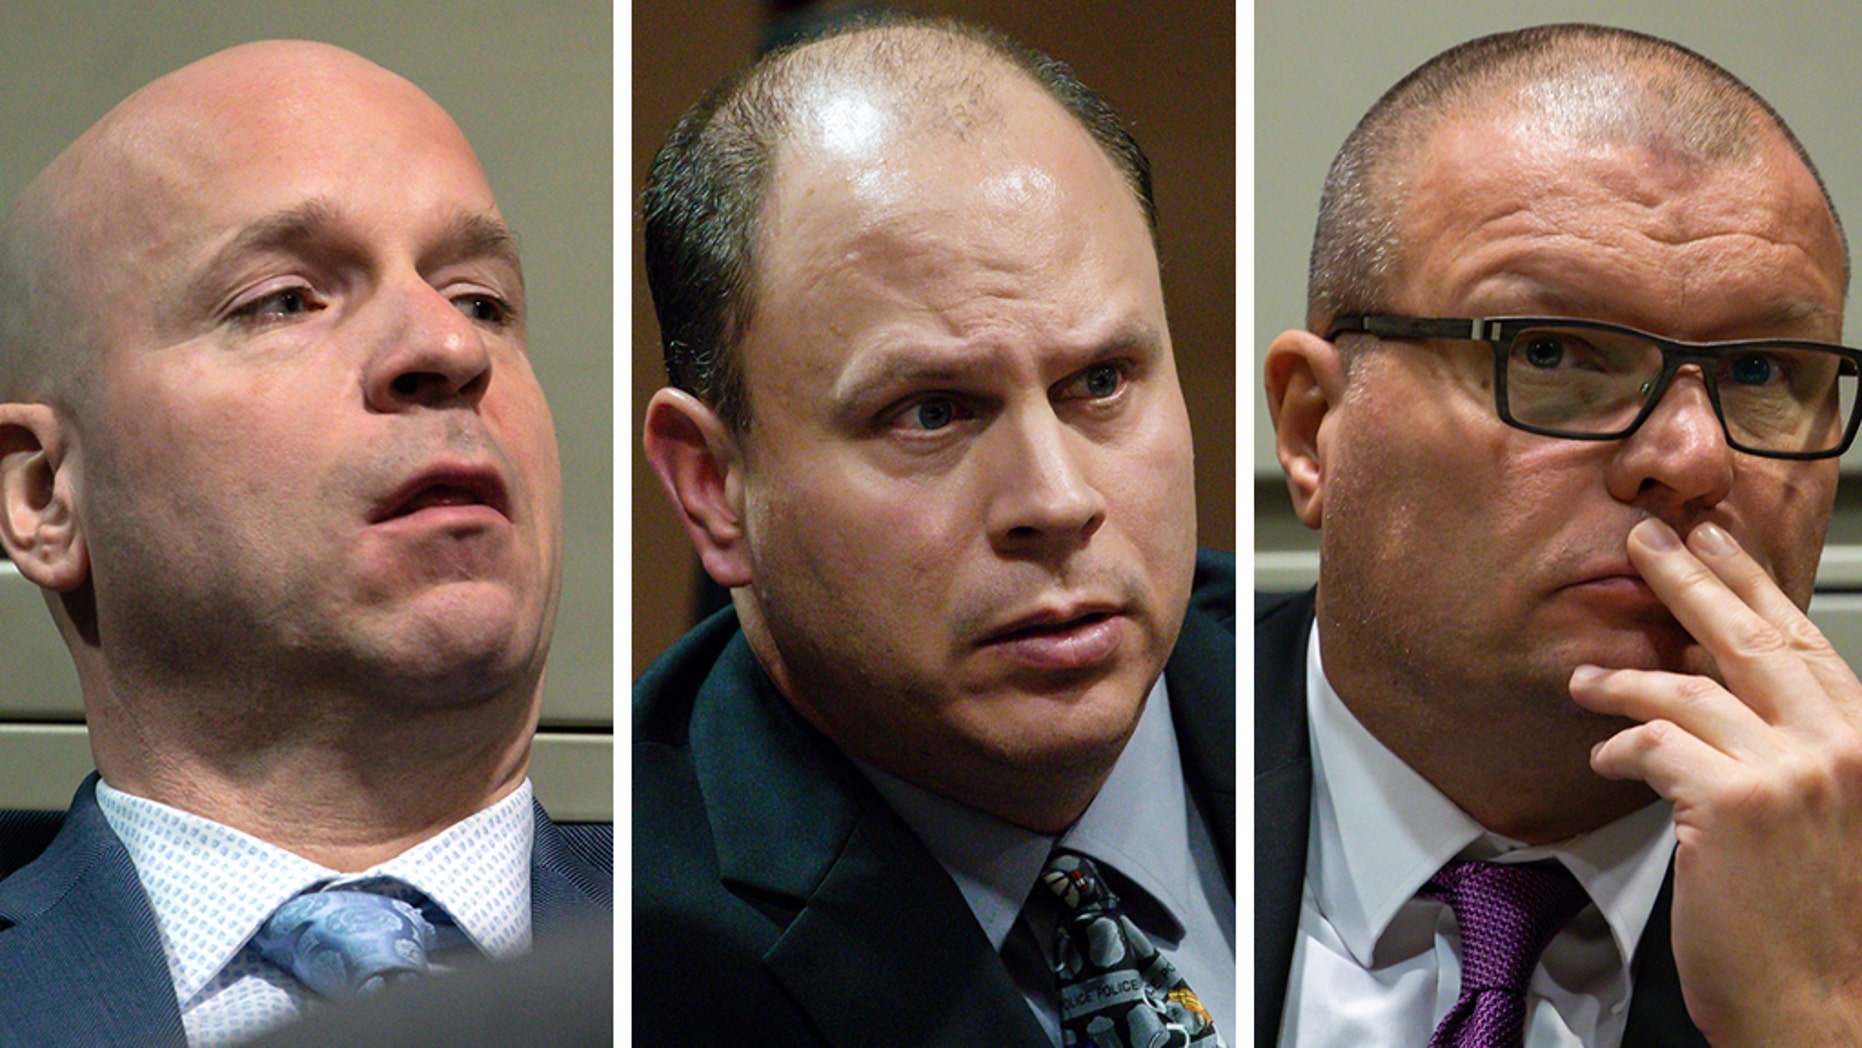 The trial of (left to right) Officer Joseph Walsh, Officer Thomas Gaffney and ex-Detective David March could reach its verdict later in December.